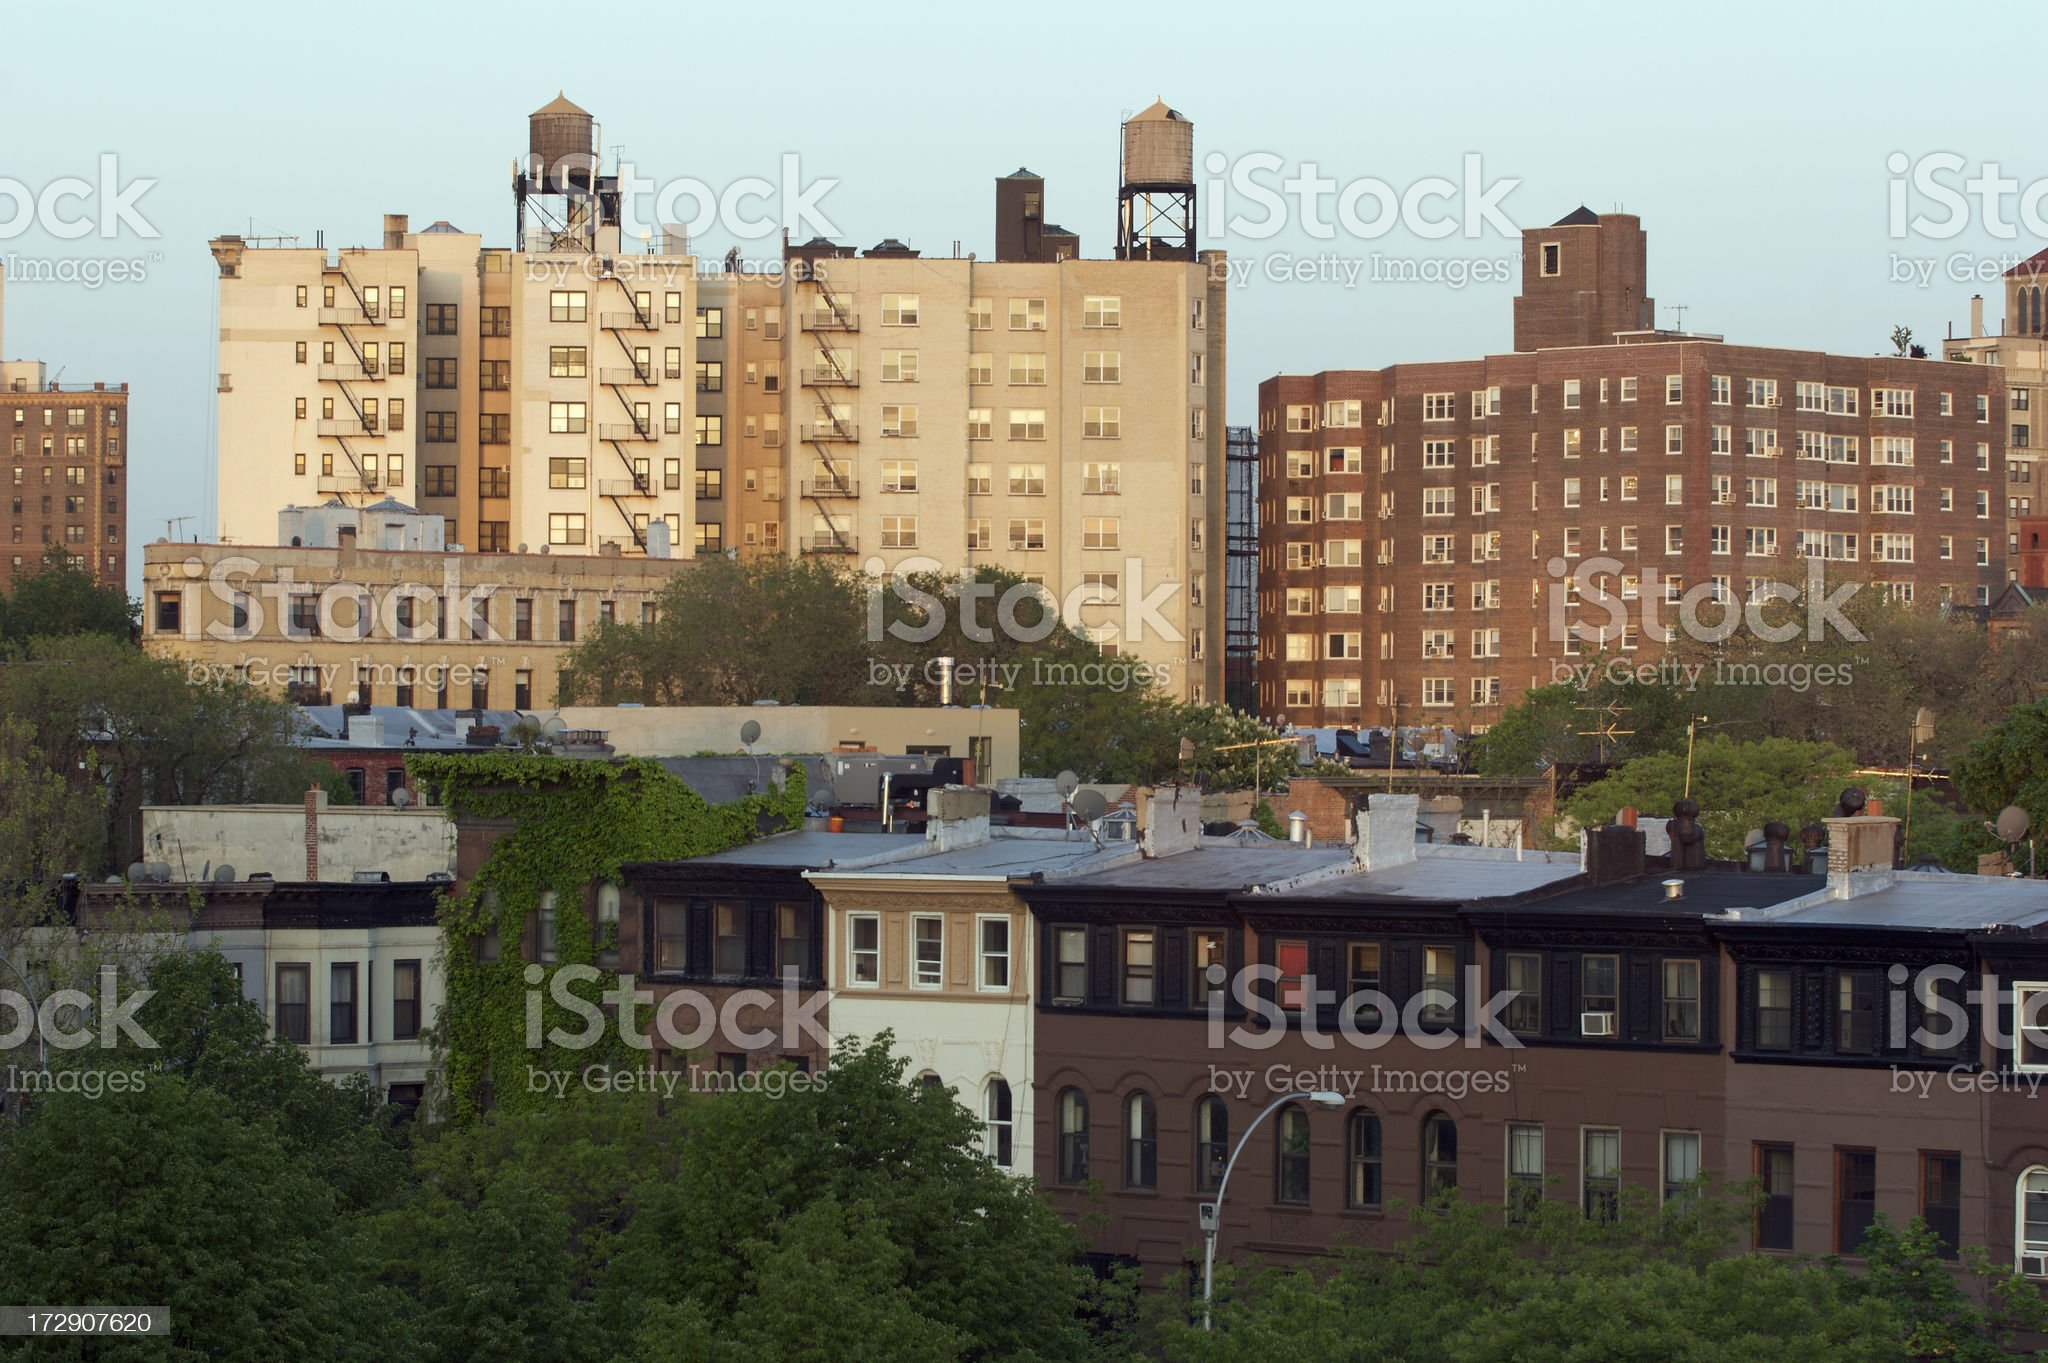 Brooklyn Apartments royalty-free stock photo